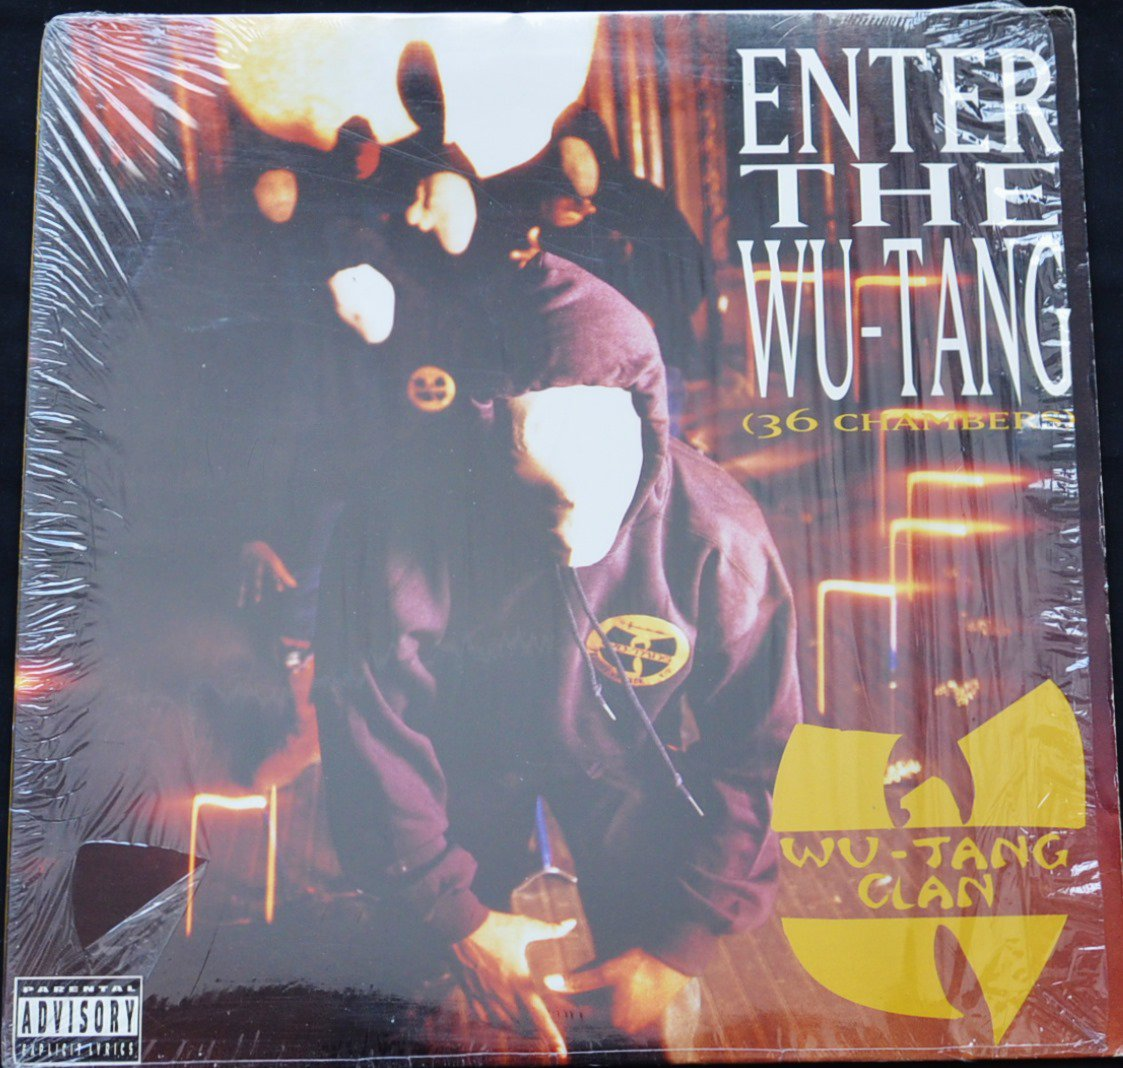 WU-TANG CLAN / ENTER THE WU-TANG (36 CHAMBERS) (1LP)